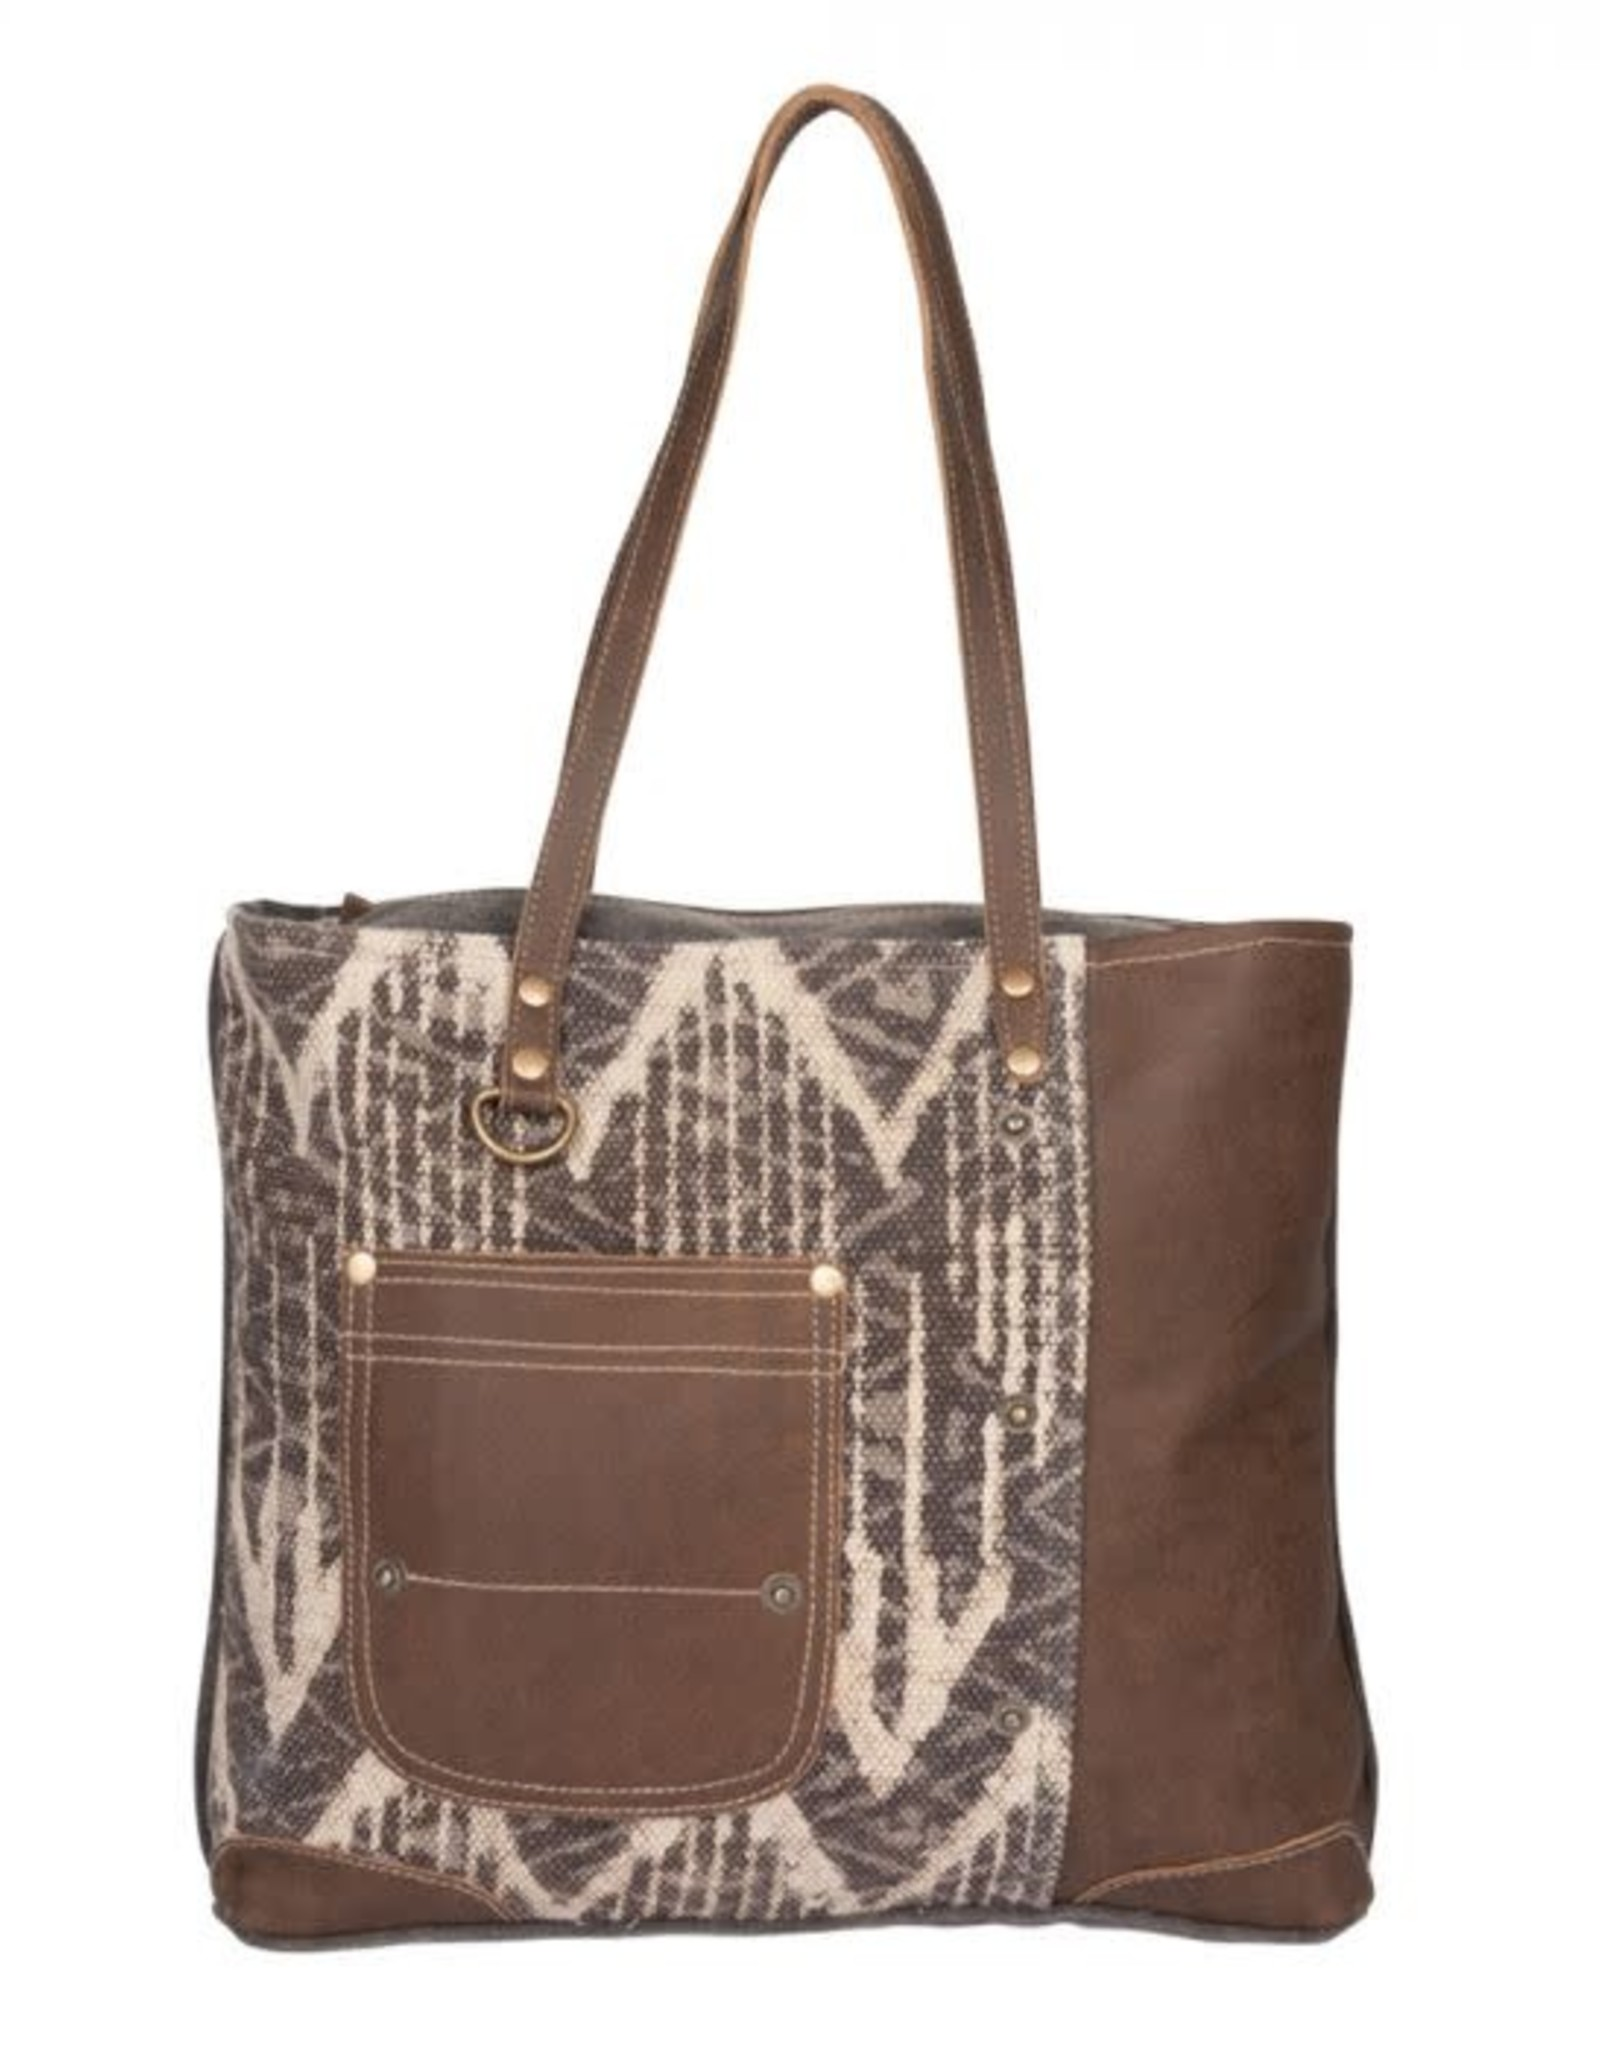 Wink Brown Canvas Tote